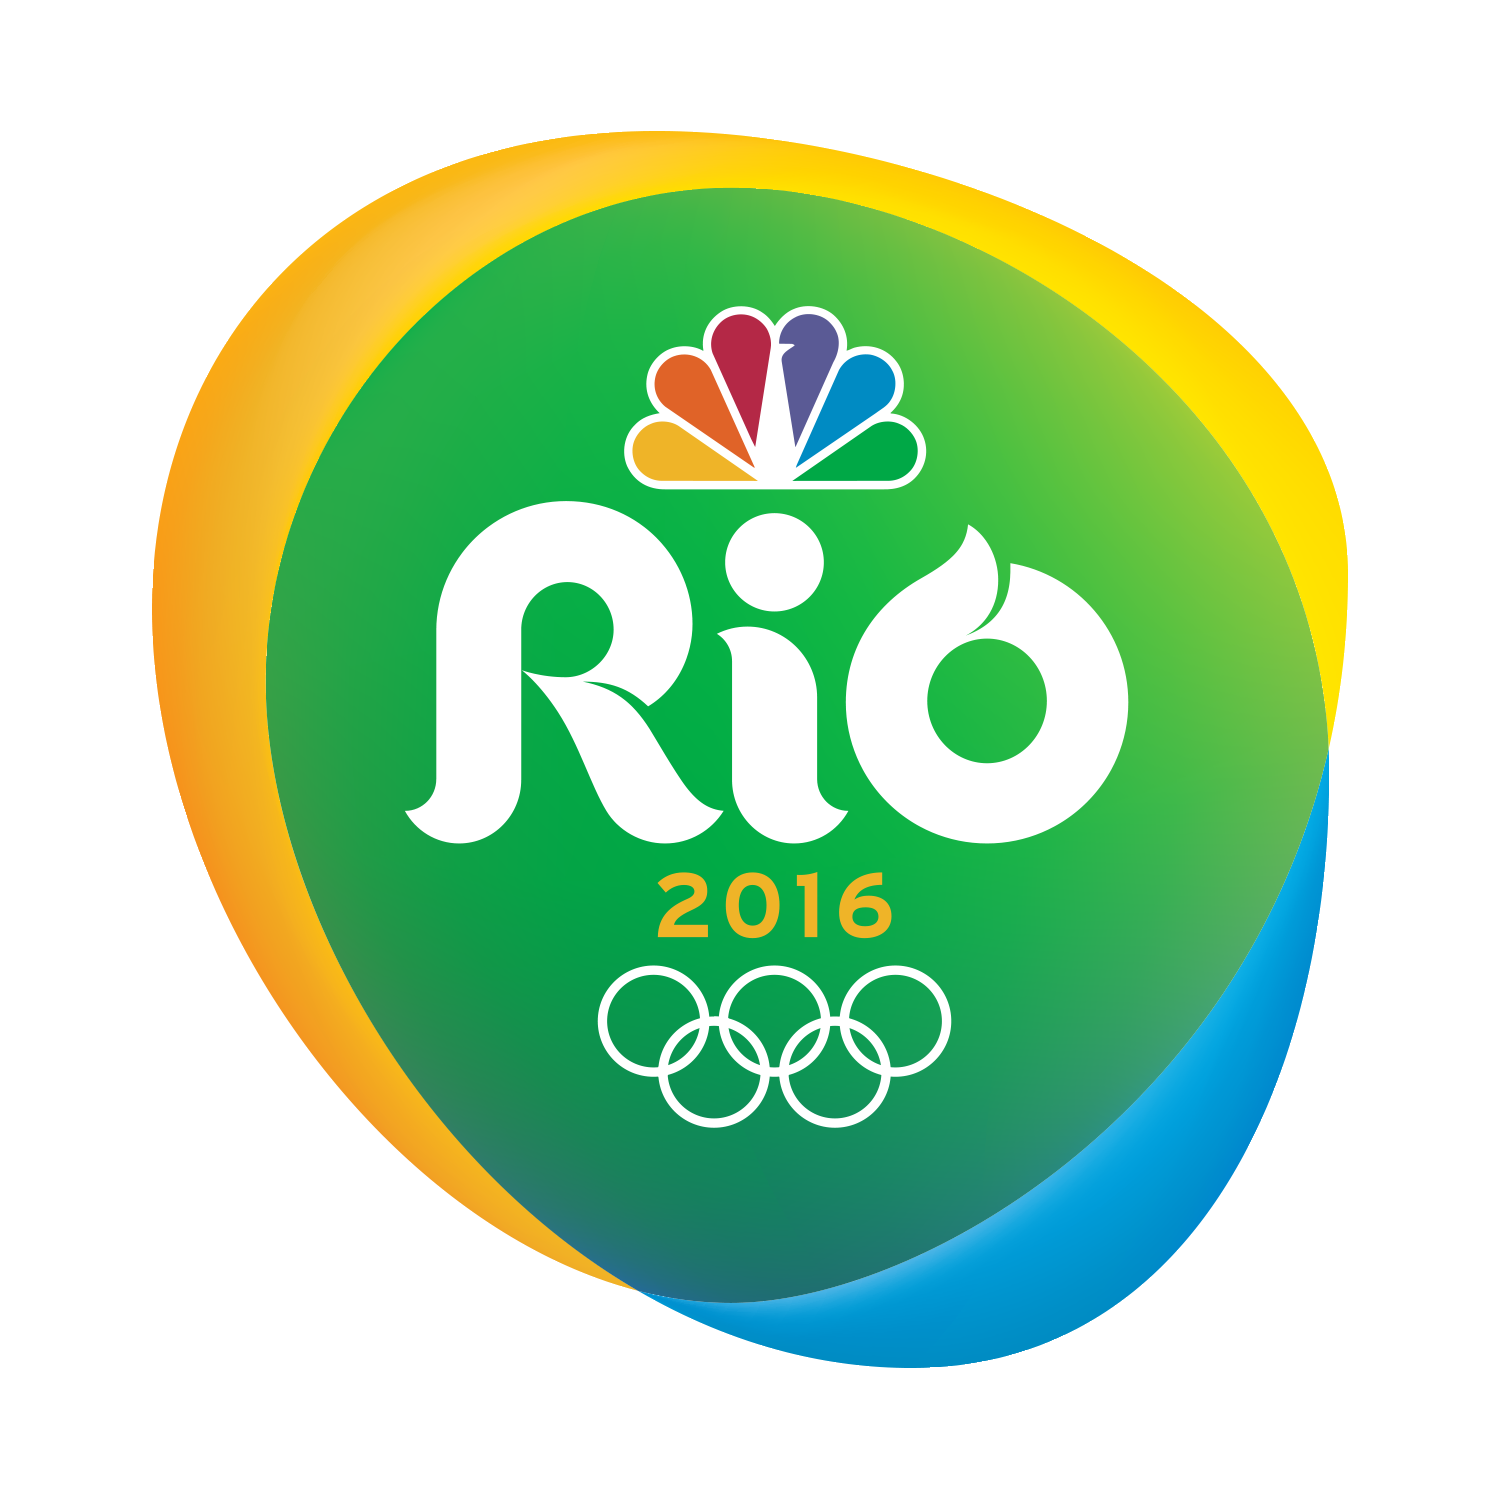 rio2016_rgb_container_gradient.png